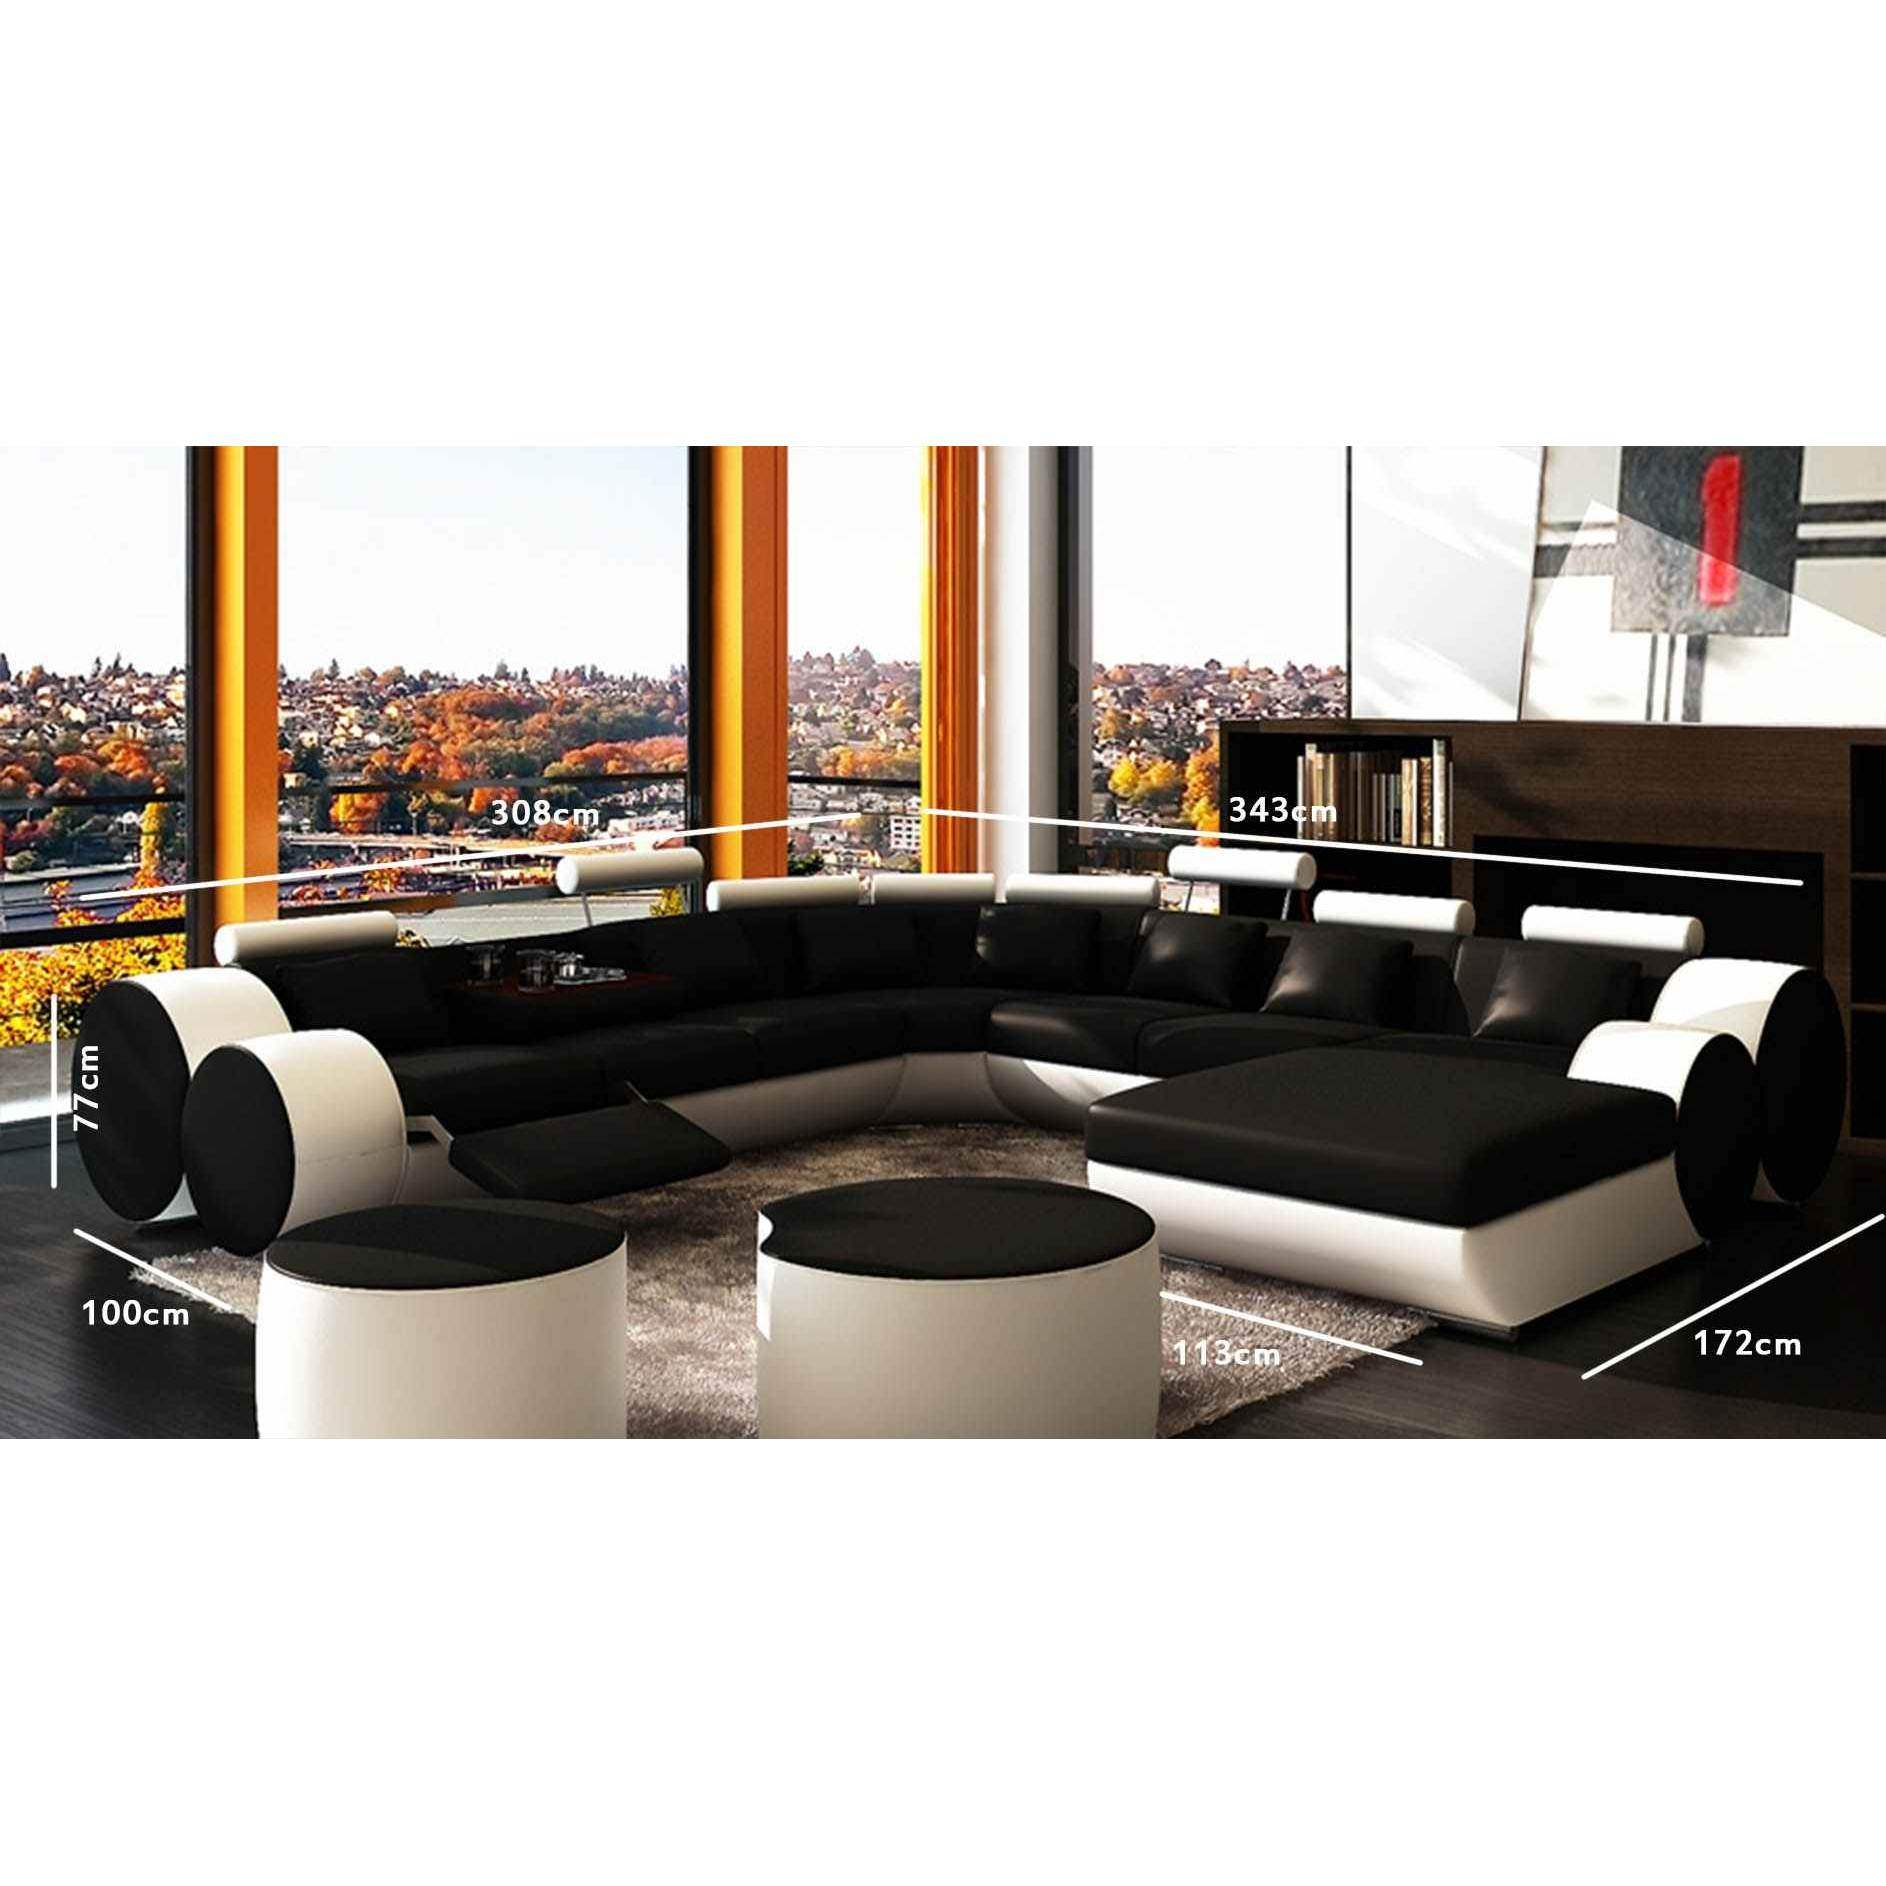 deco in paris canape panoramique cuir noir et blanc roma can pan roma noir blanc. Black Bedroom Furniture Sets. Home Design Ideas